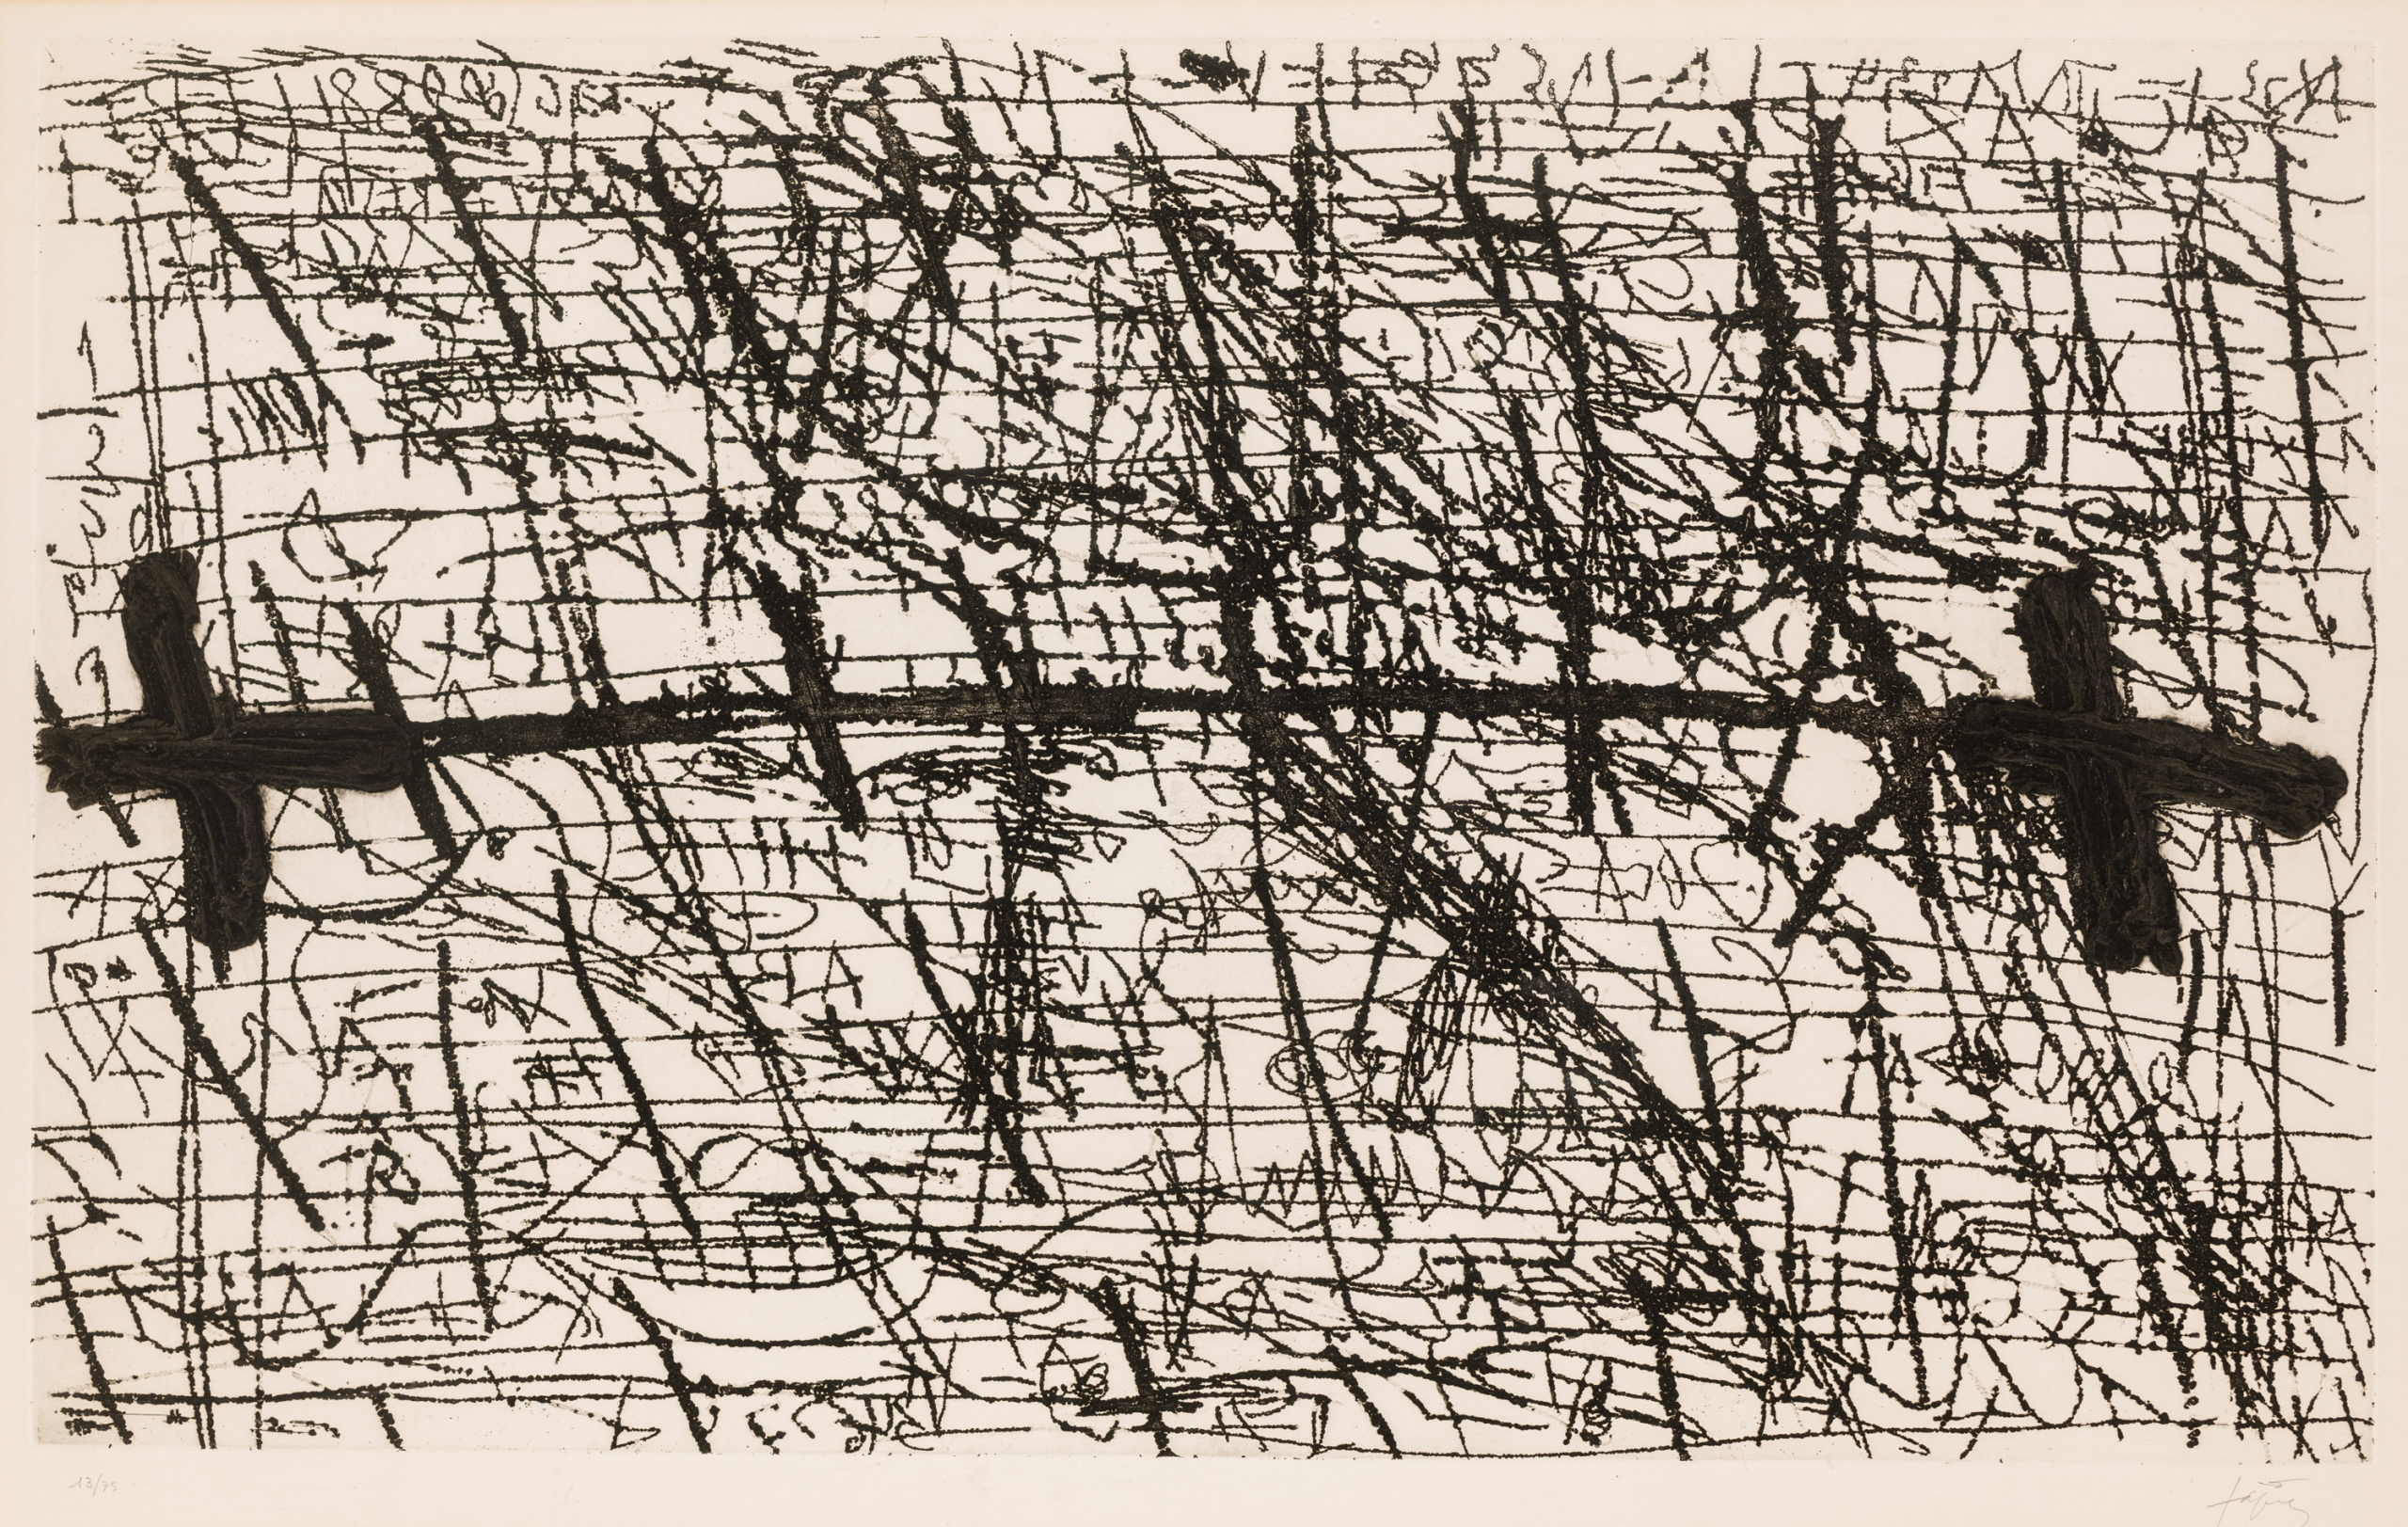 Antoni Tapies, Ohne Titel / untitled